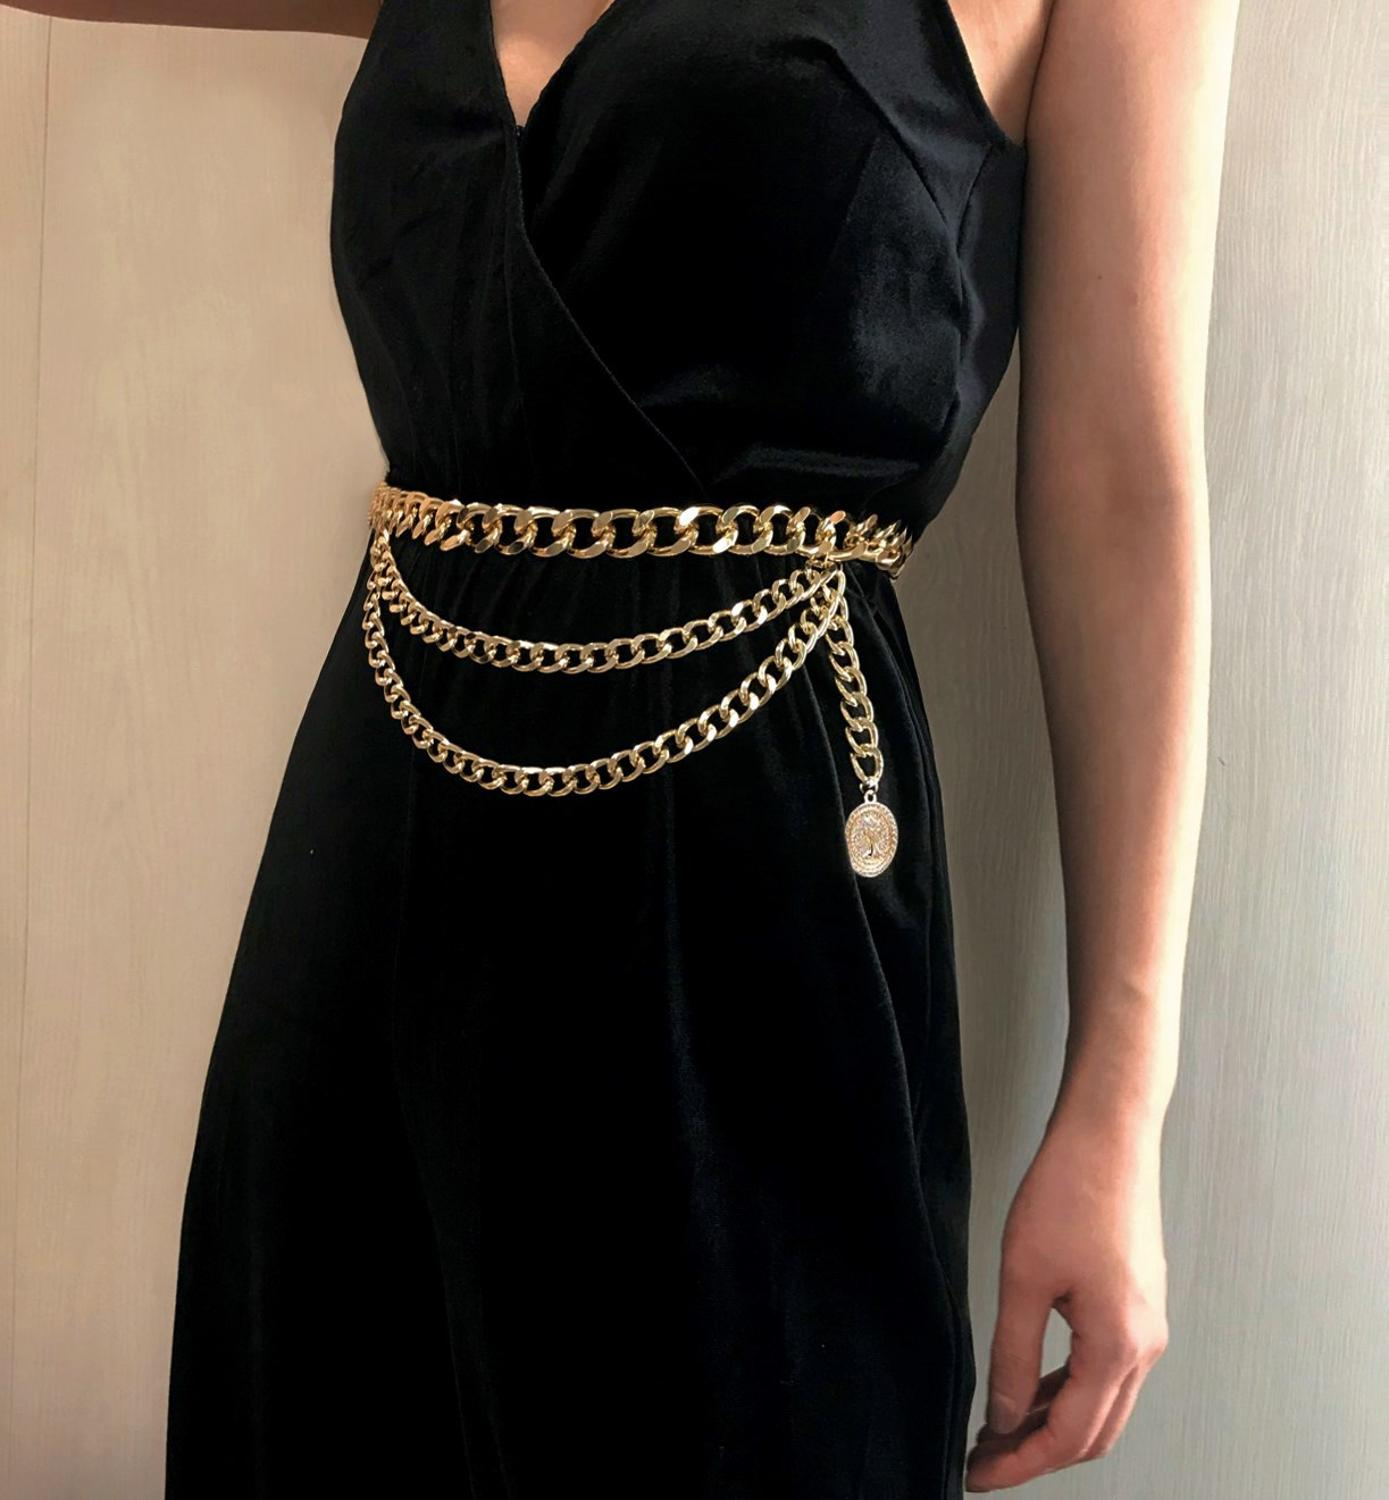 New Fashion Girls Metal Waist Chain Gold Plated Belt Decoration Belt For Dresses Women Circle Metal String Designer Belts